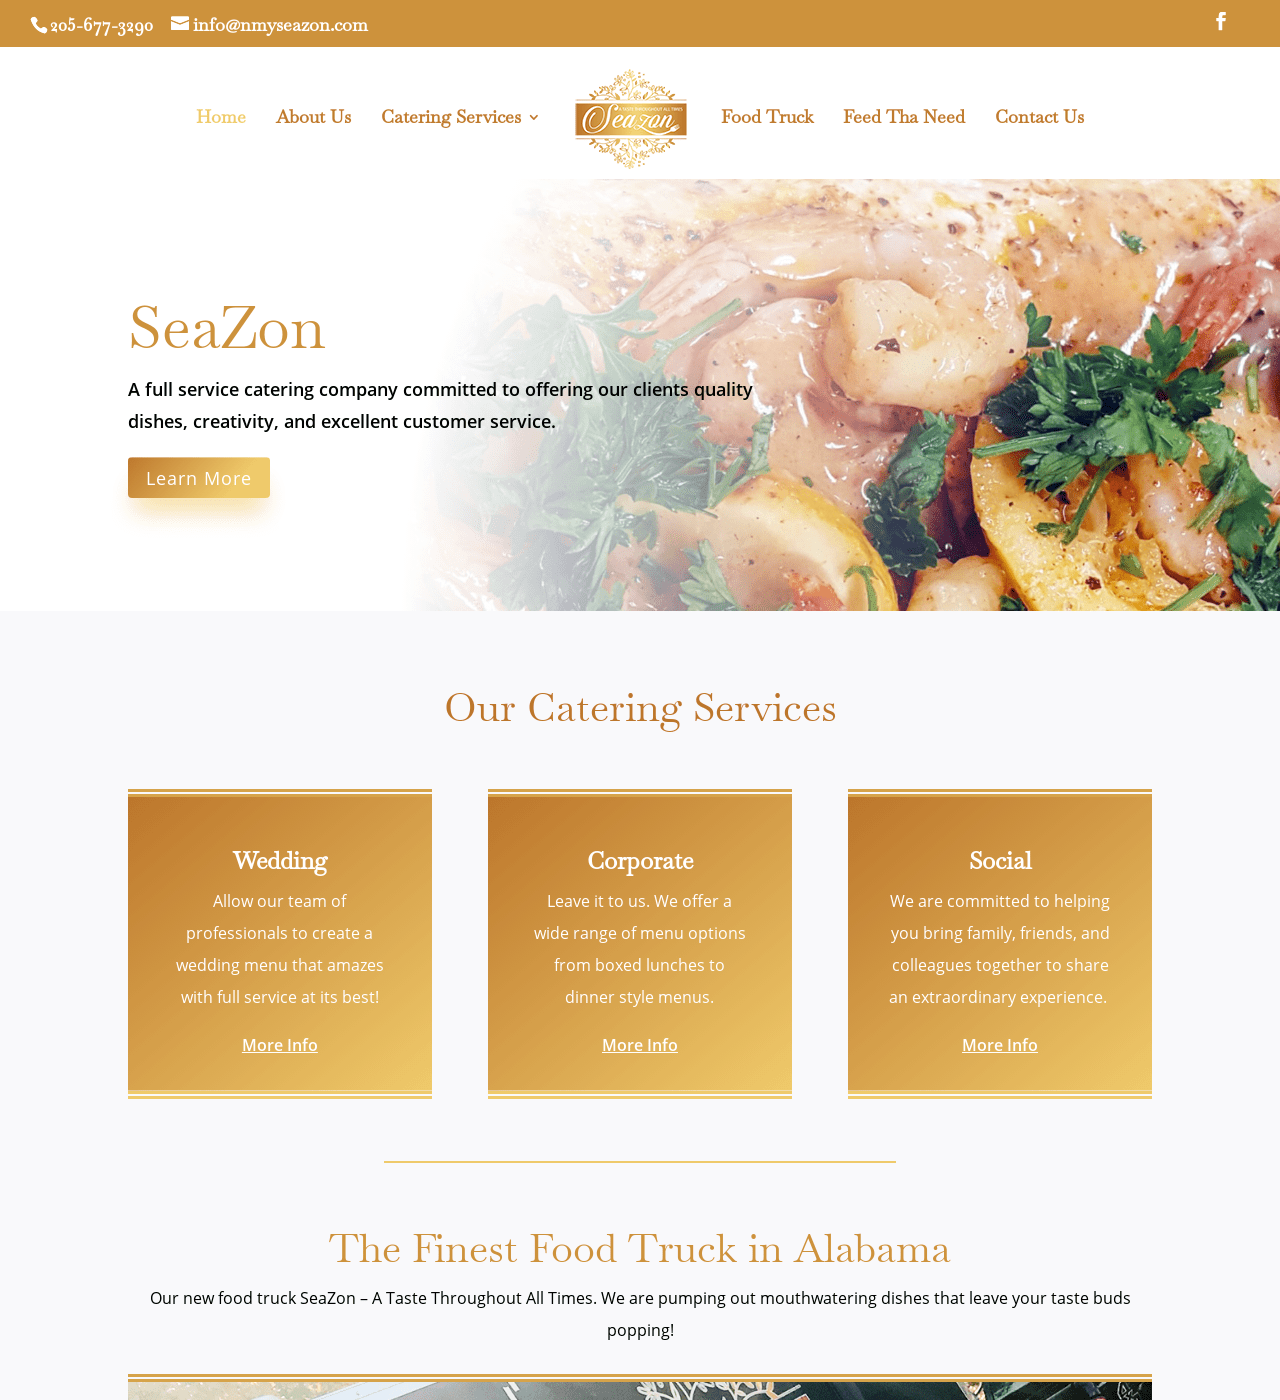 Birmingham-Web-Design-Agency-C-Kinion-Design- SeaZon